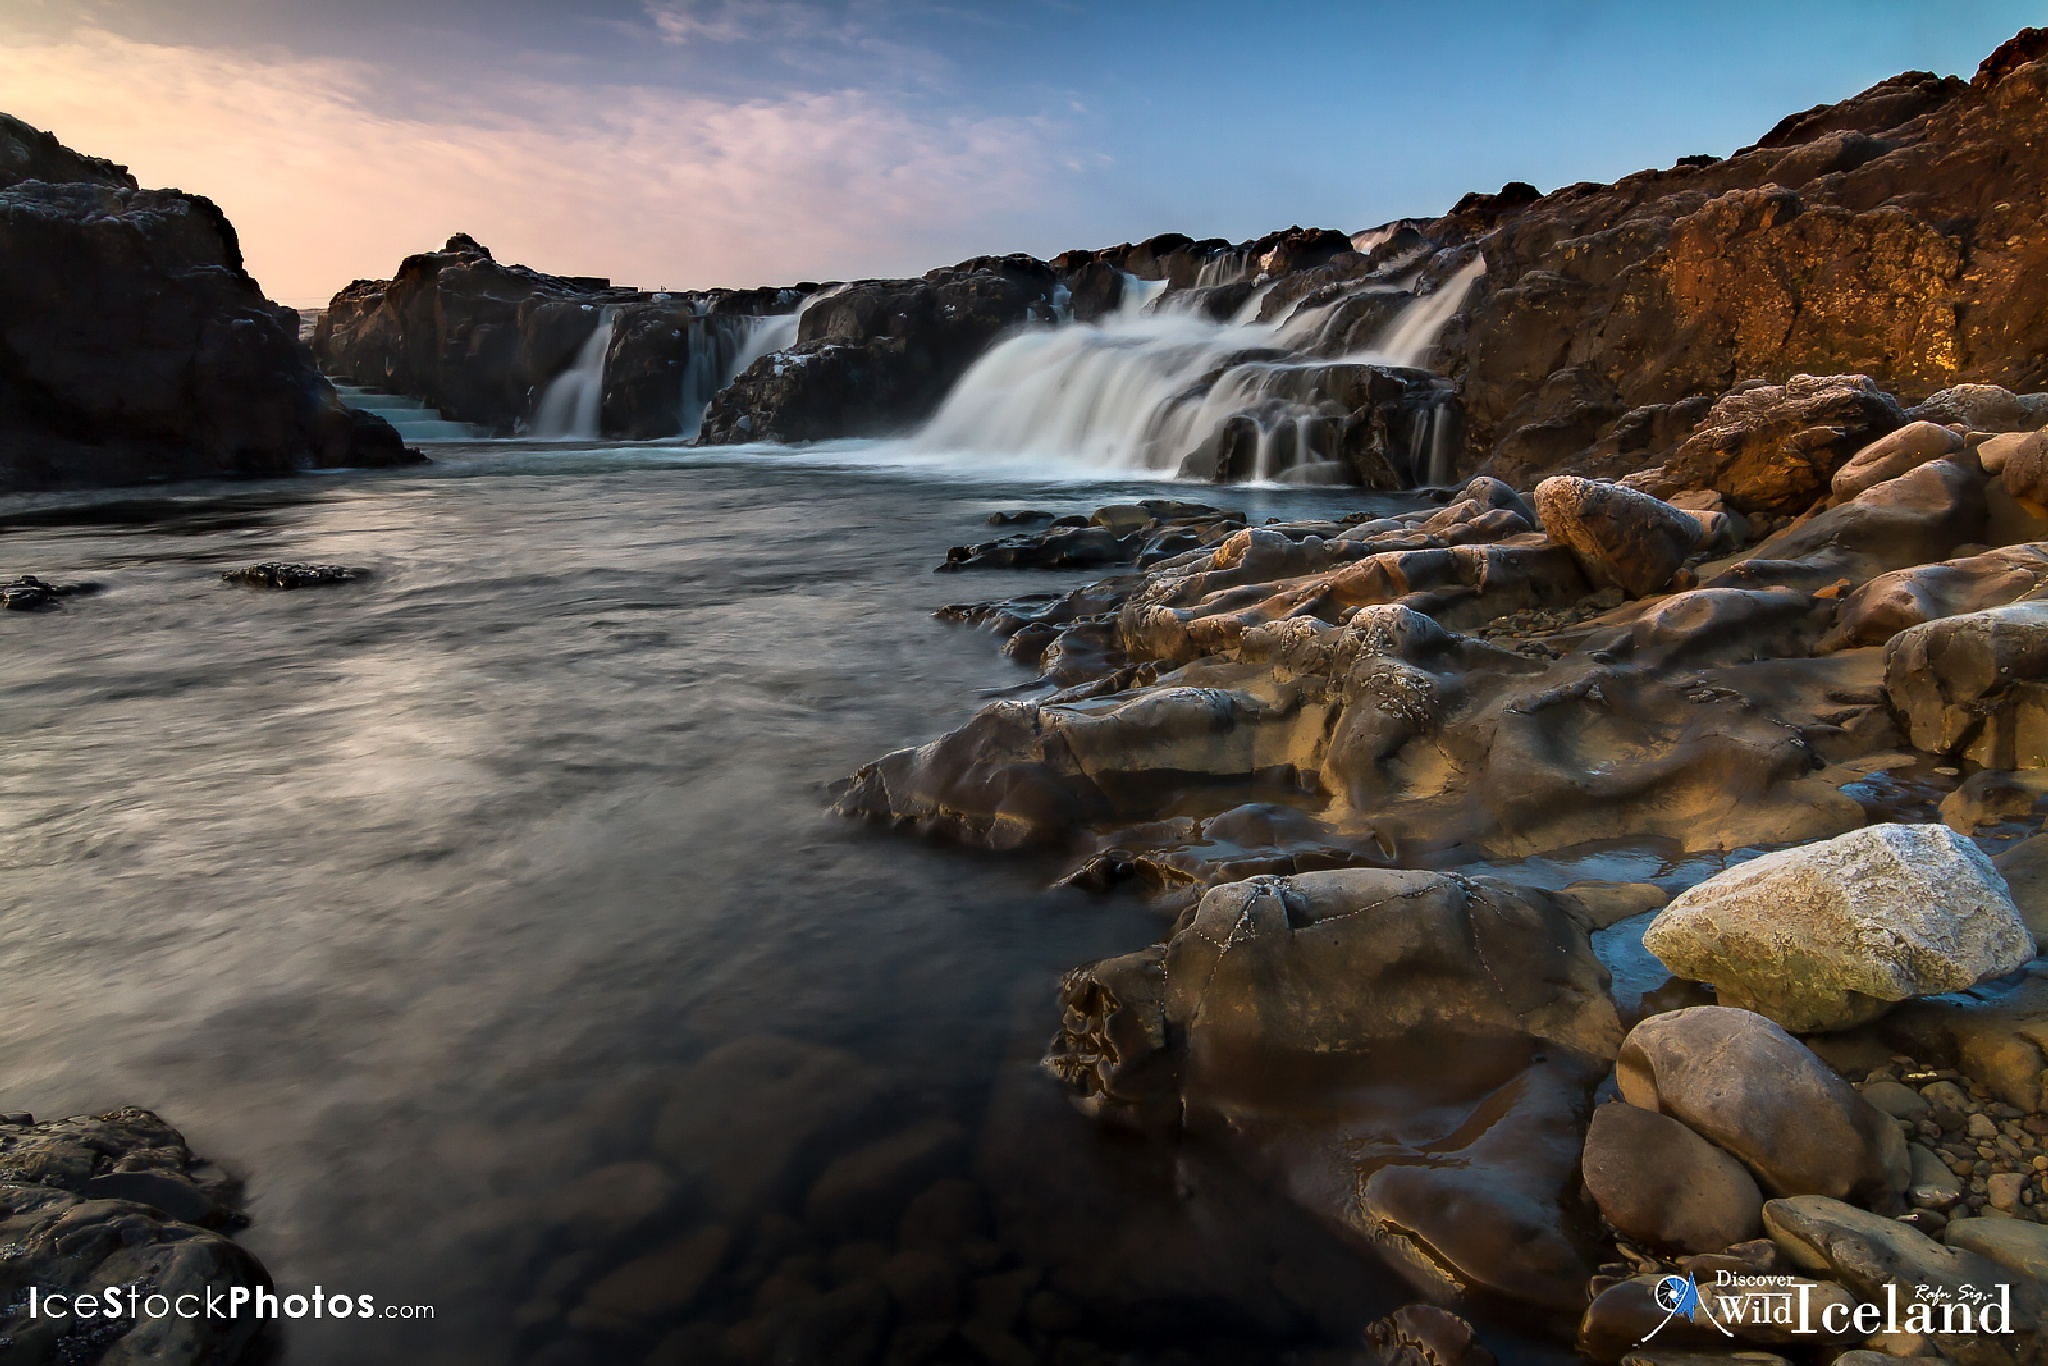 Discover Wild Iceland – Like Langárfoss in winter by Rafn Sig,-  @ Discover Wild Iceland.com